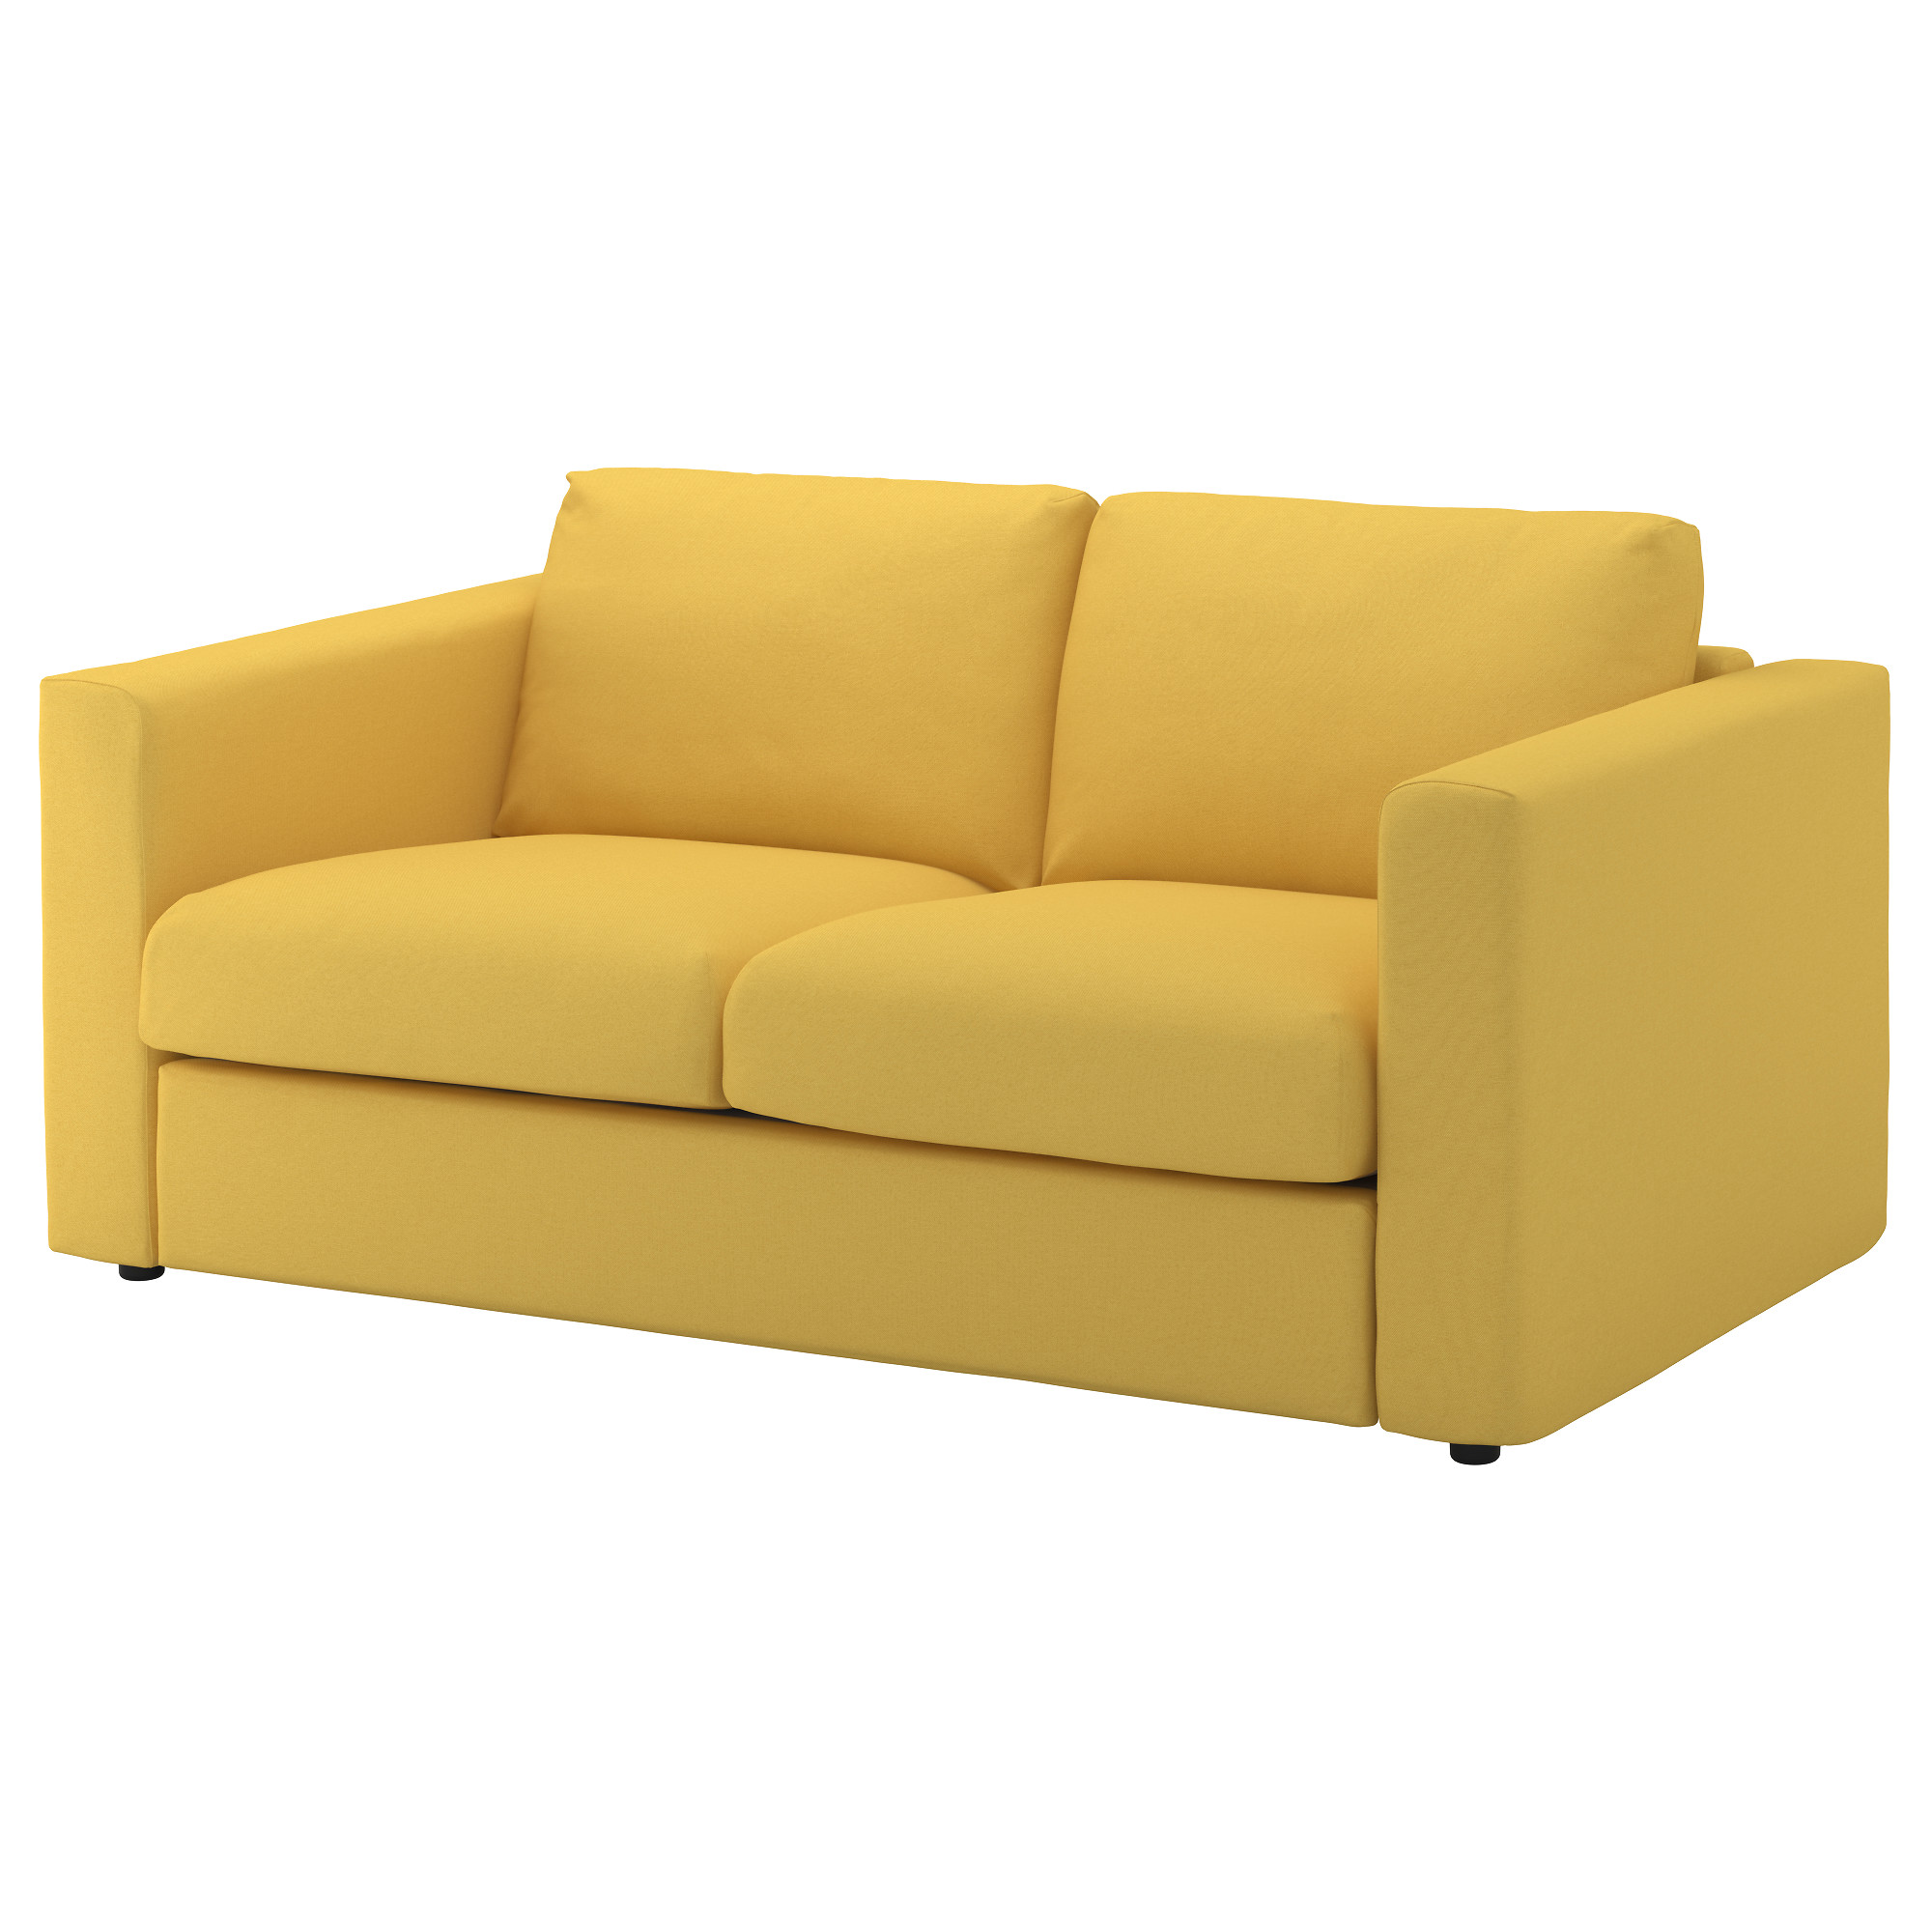 Shallow sofa depth best small modern sectionals freshome Sofa depth